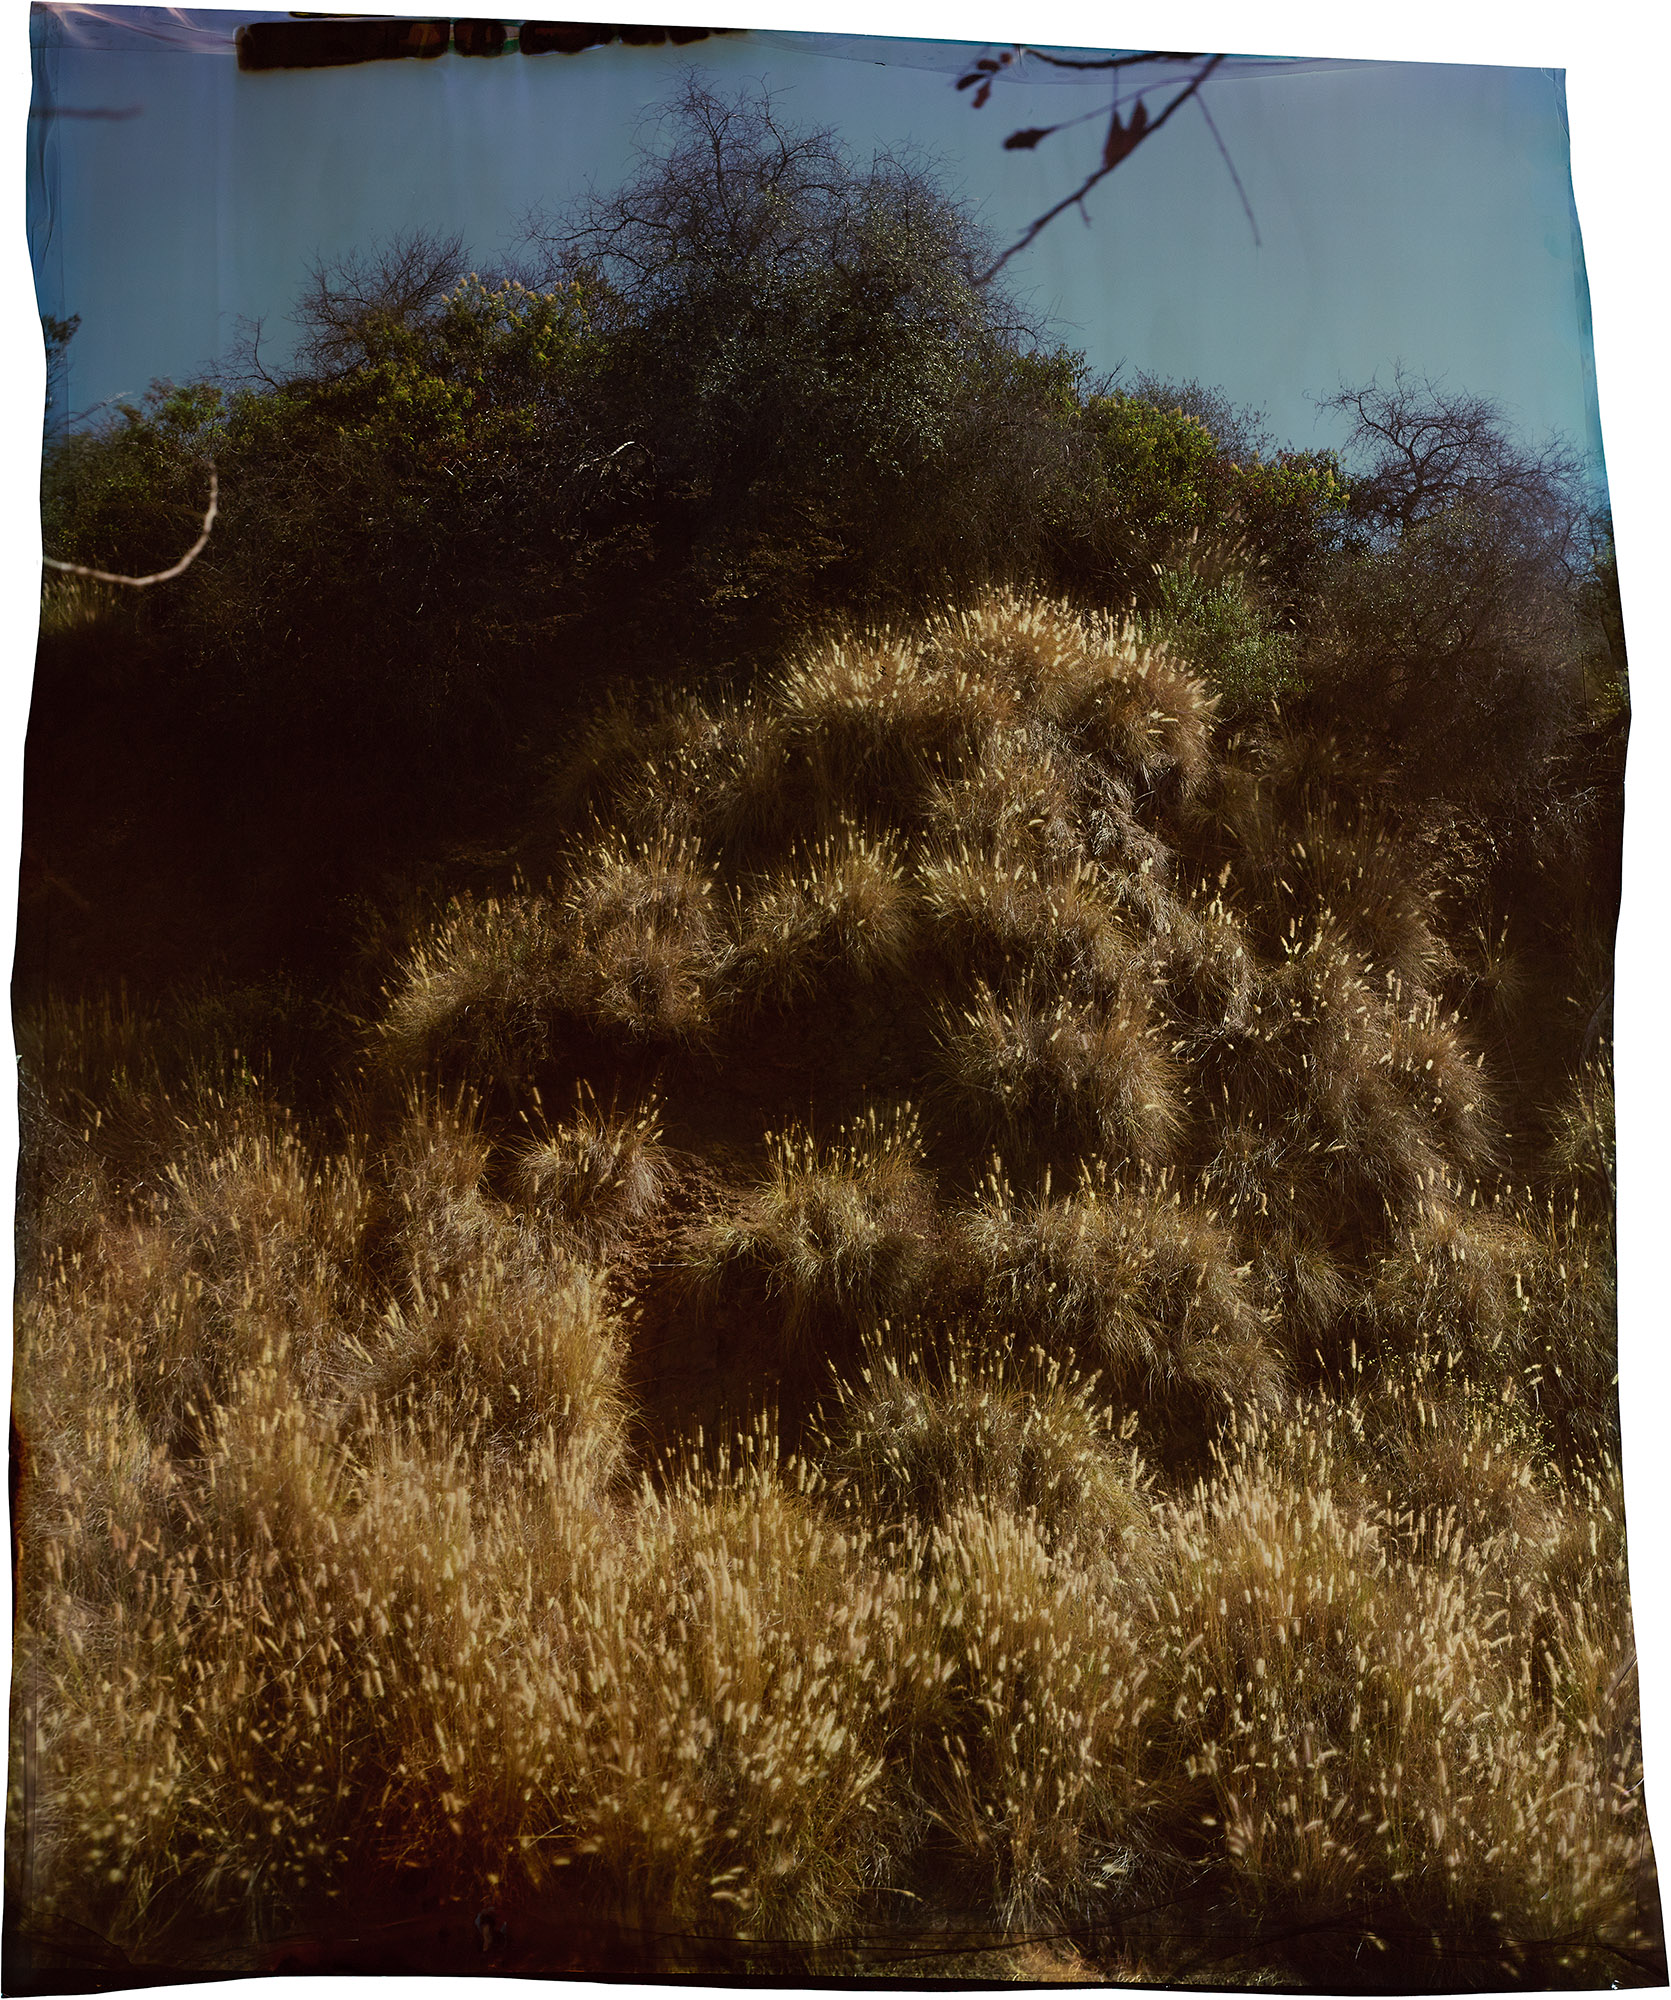 John Chiara,  Western Canyon Road at Mount Hollywood Drive, Los Angeles,   2013 ; from  John Chiara: California